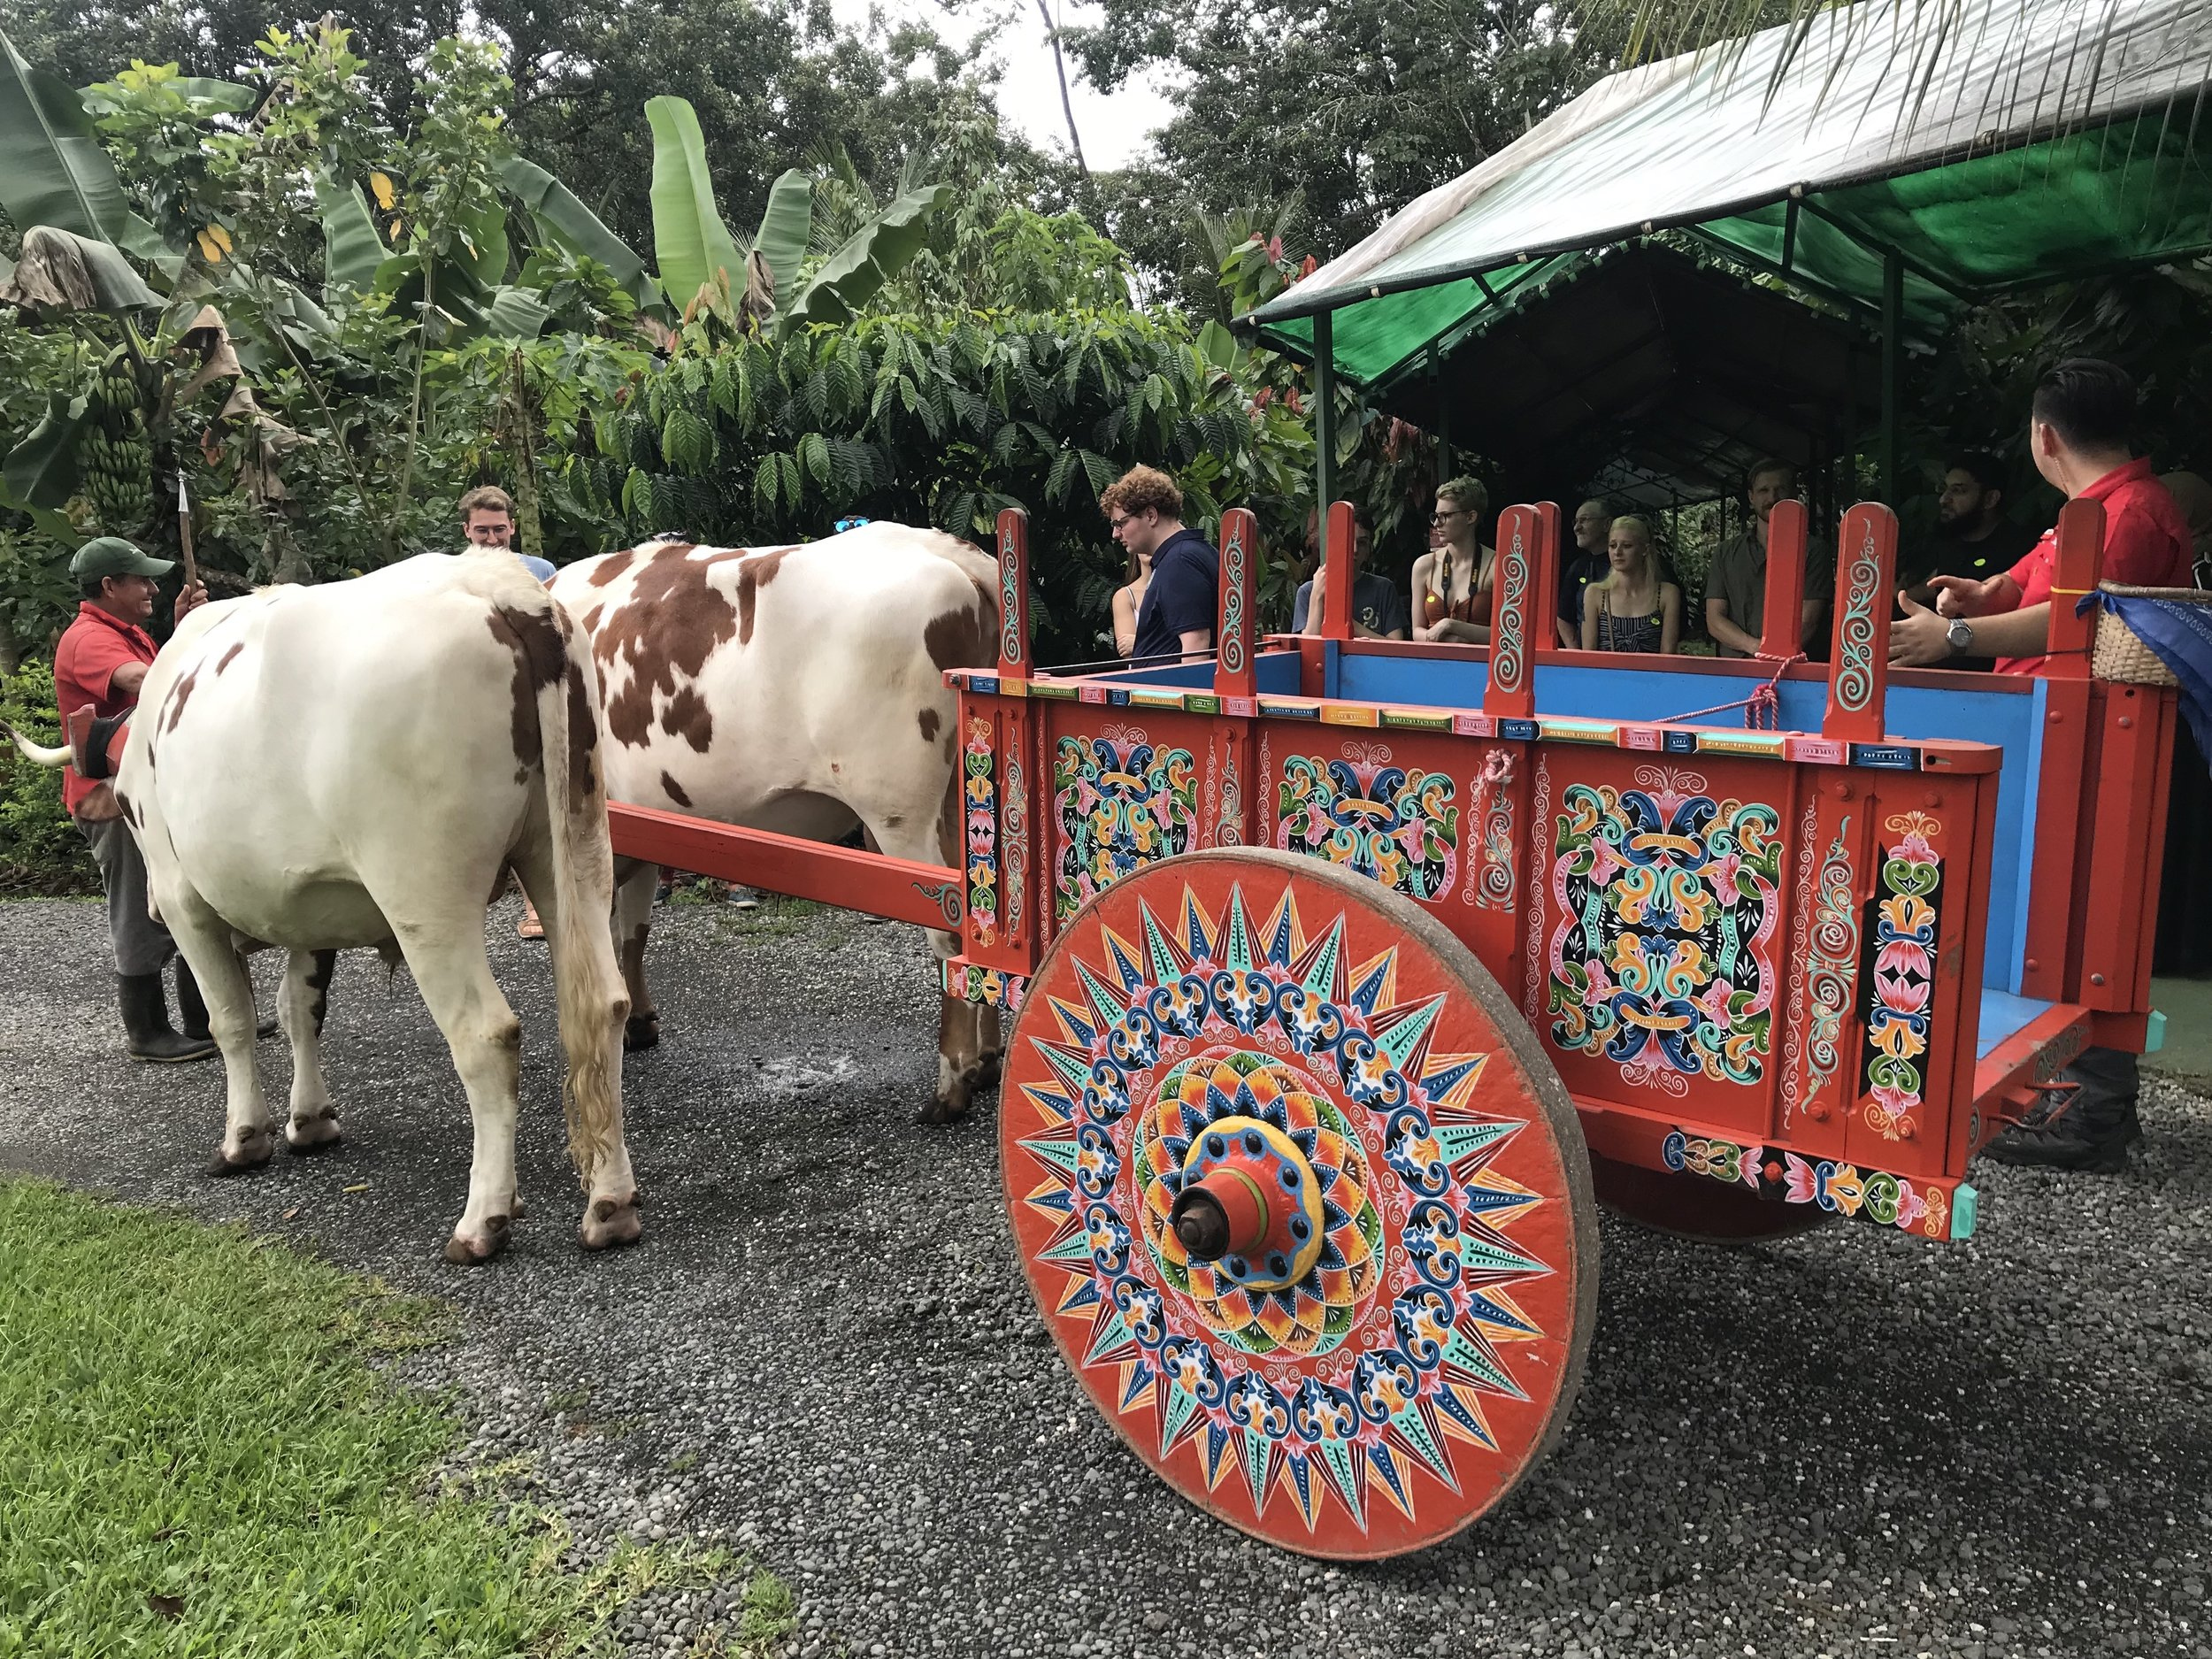 A traditional ox cart.